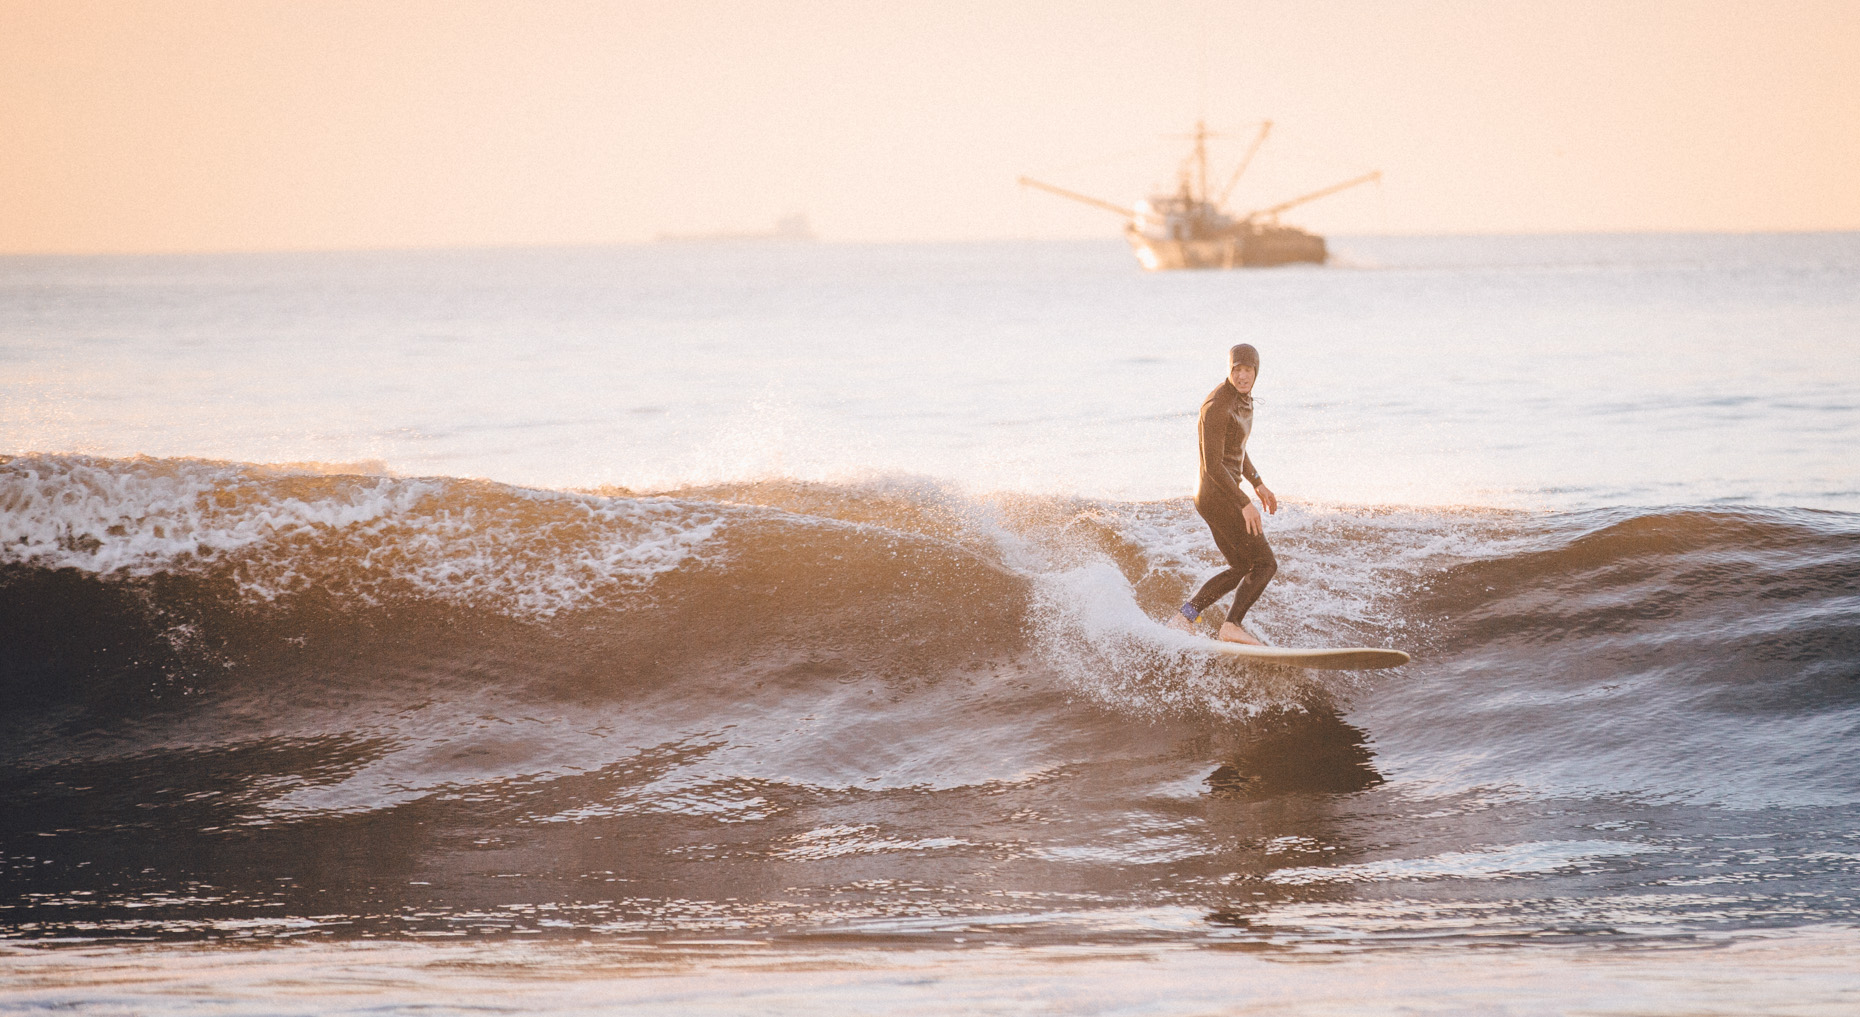 Adventure and outdoor lifestyle photogaph by Forest Woodward surfing Rockaway Beach NYC